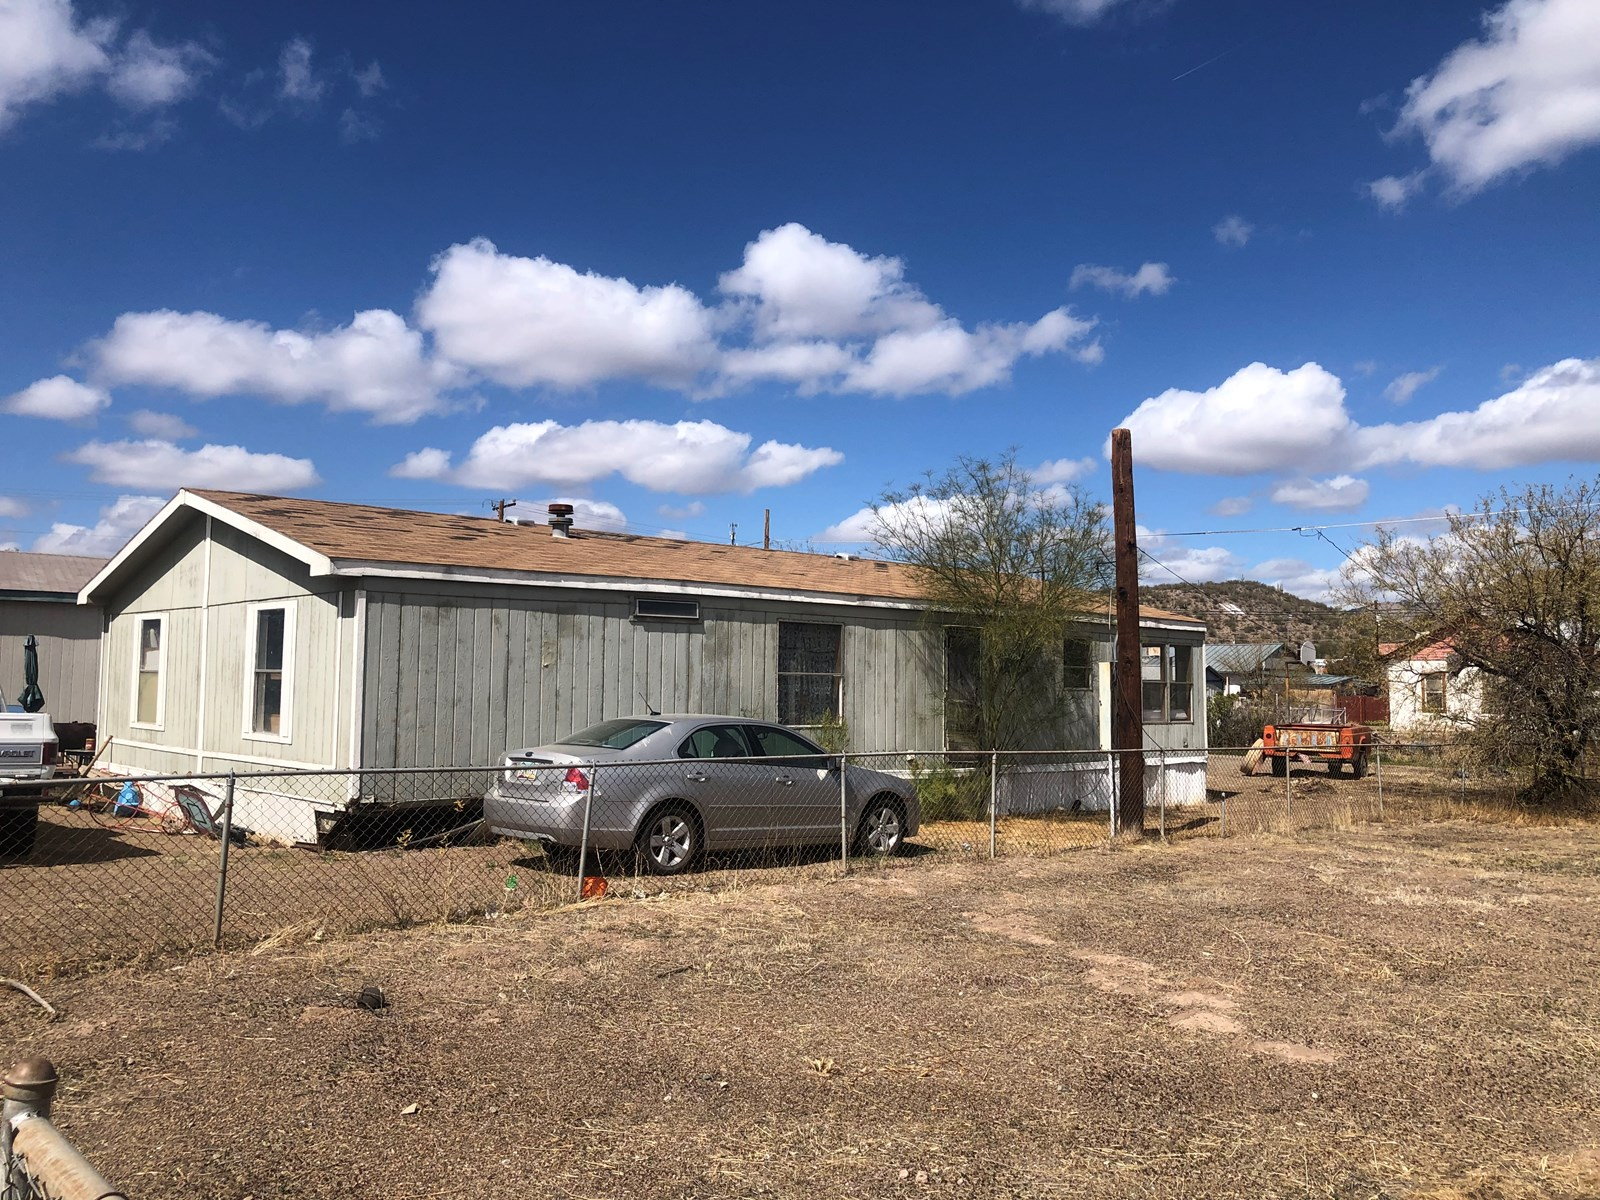 3 BEDROOM FIX AND FLIP IN WINKELMAN AZ ONLINE AUCTION